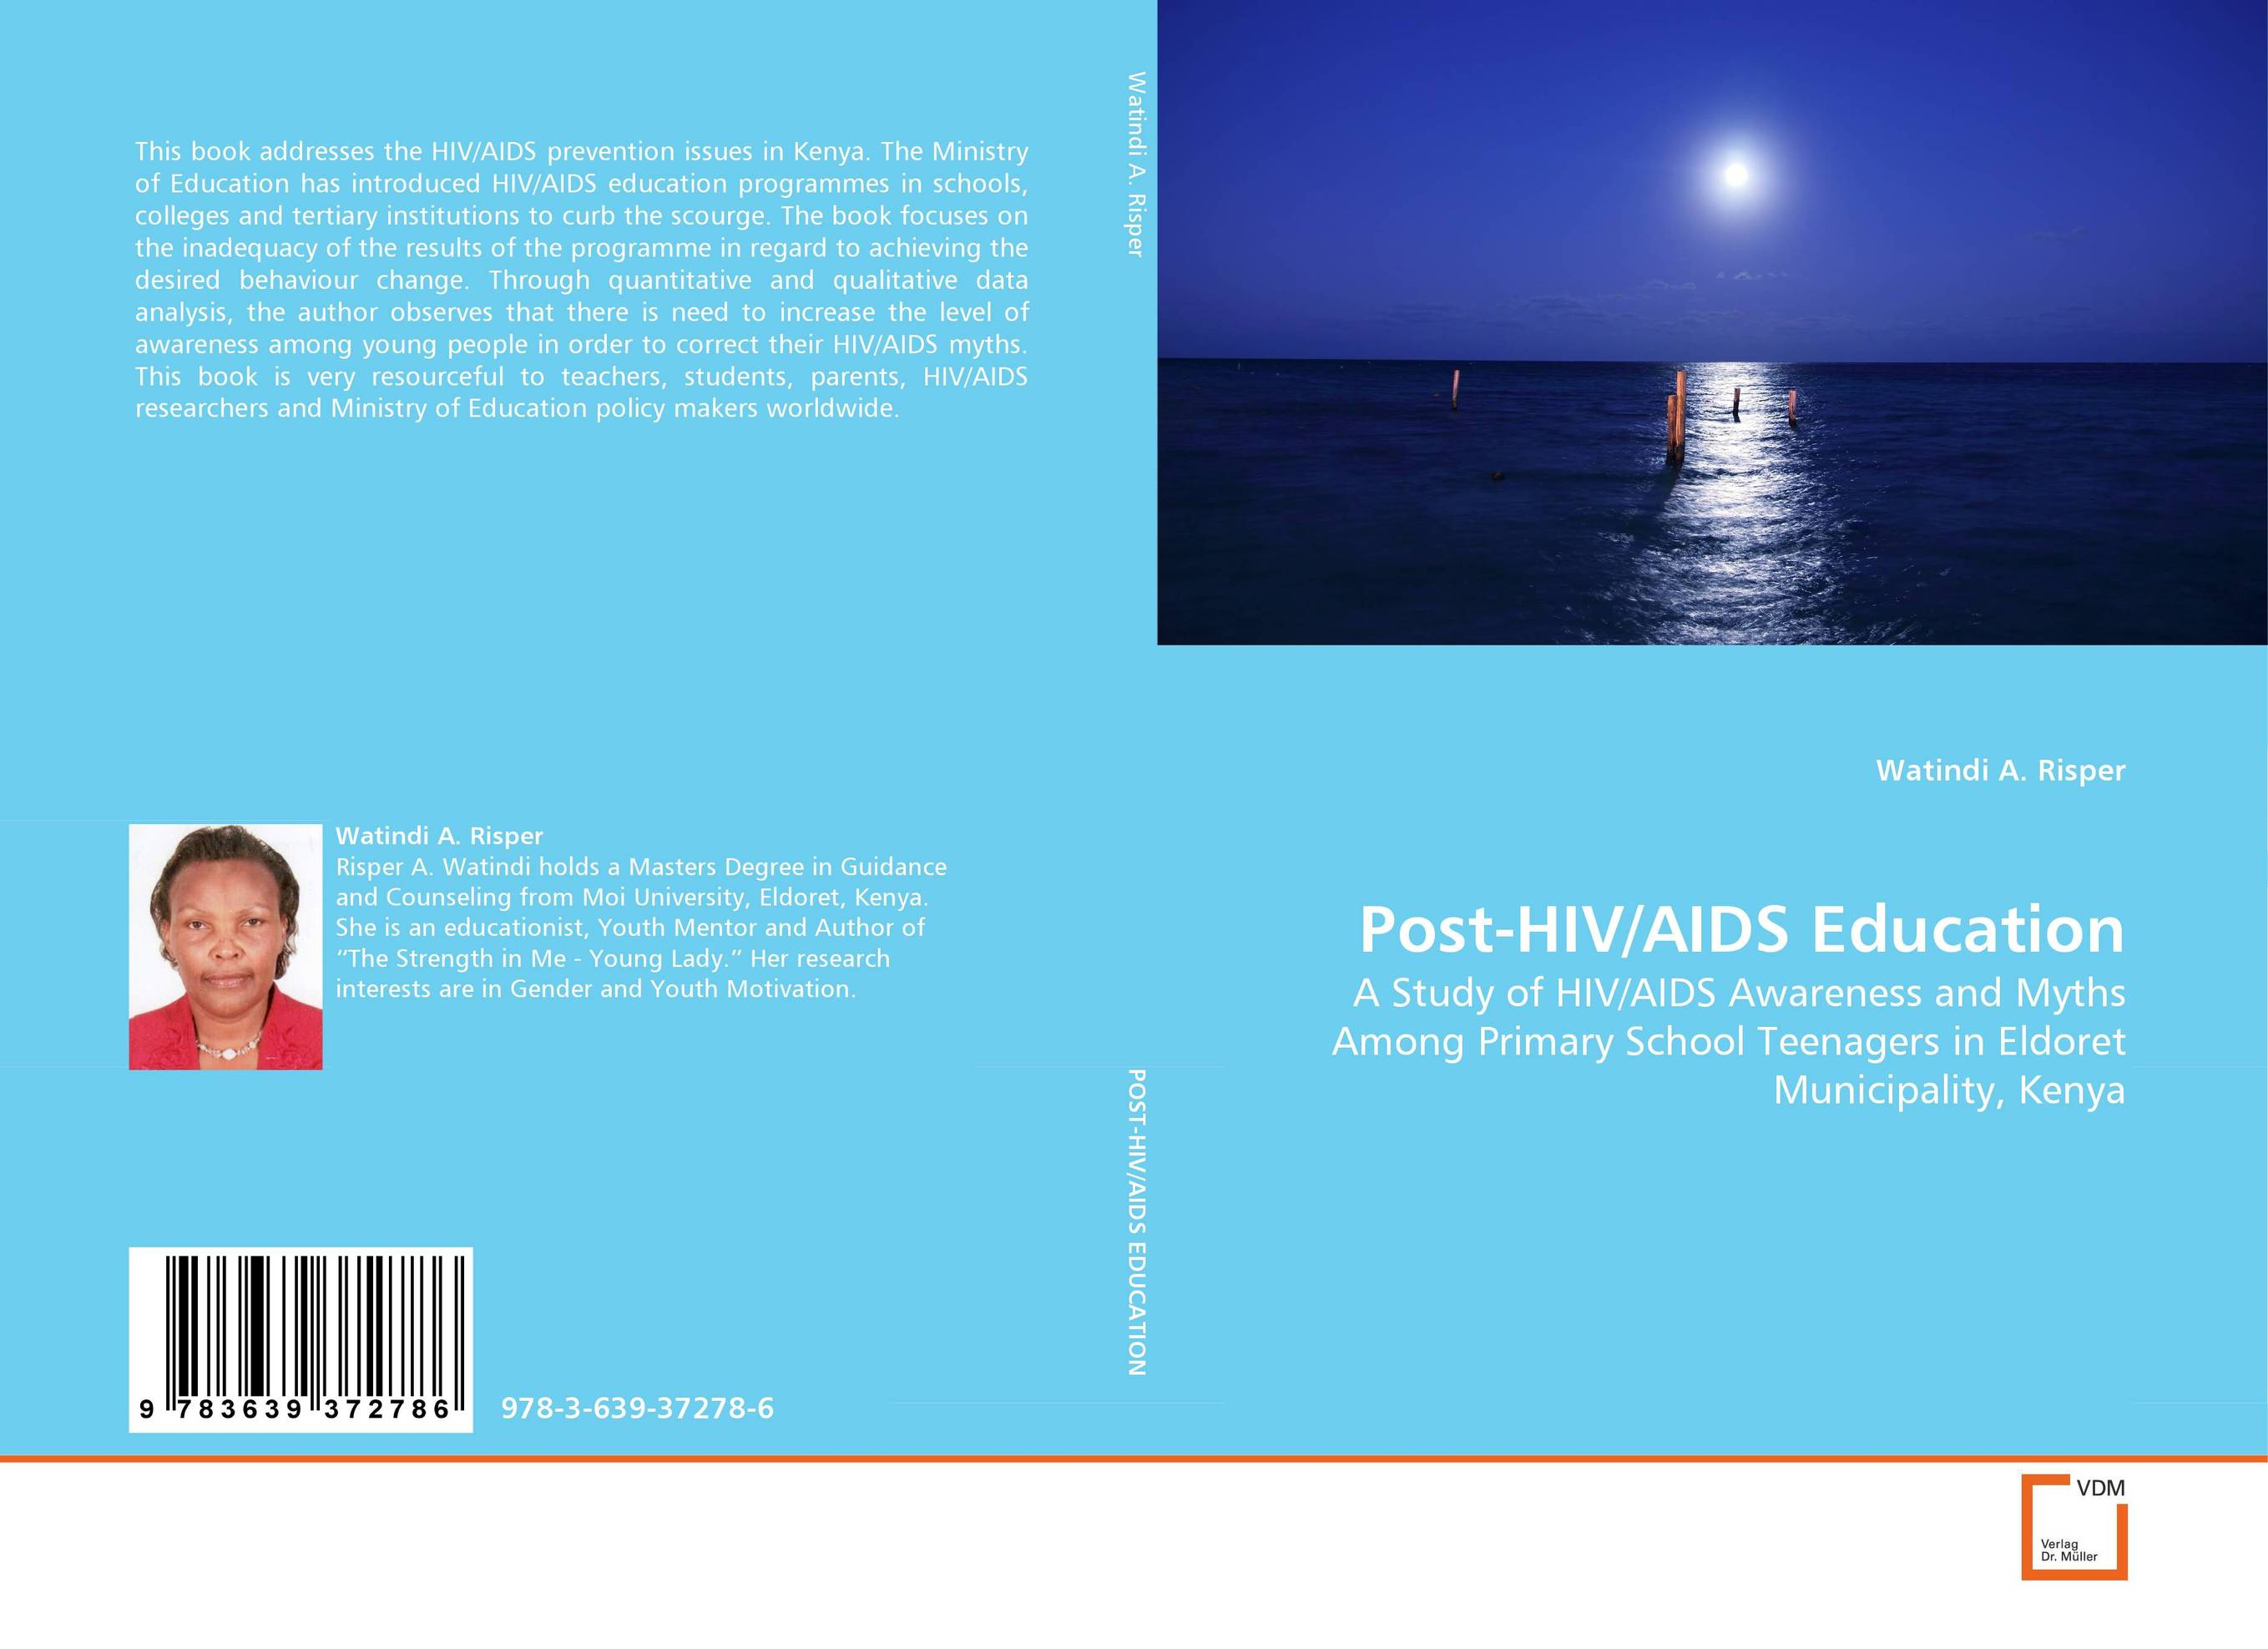 Post-HIV/AIDS Education survival analysis and stochastic modelling on hiv aids data